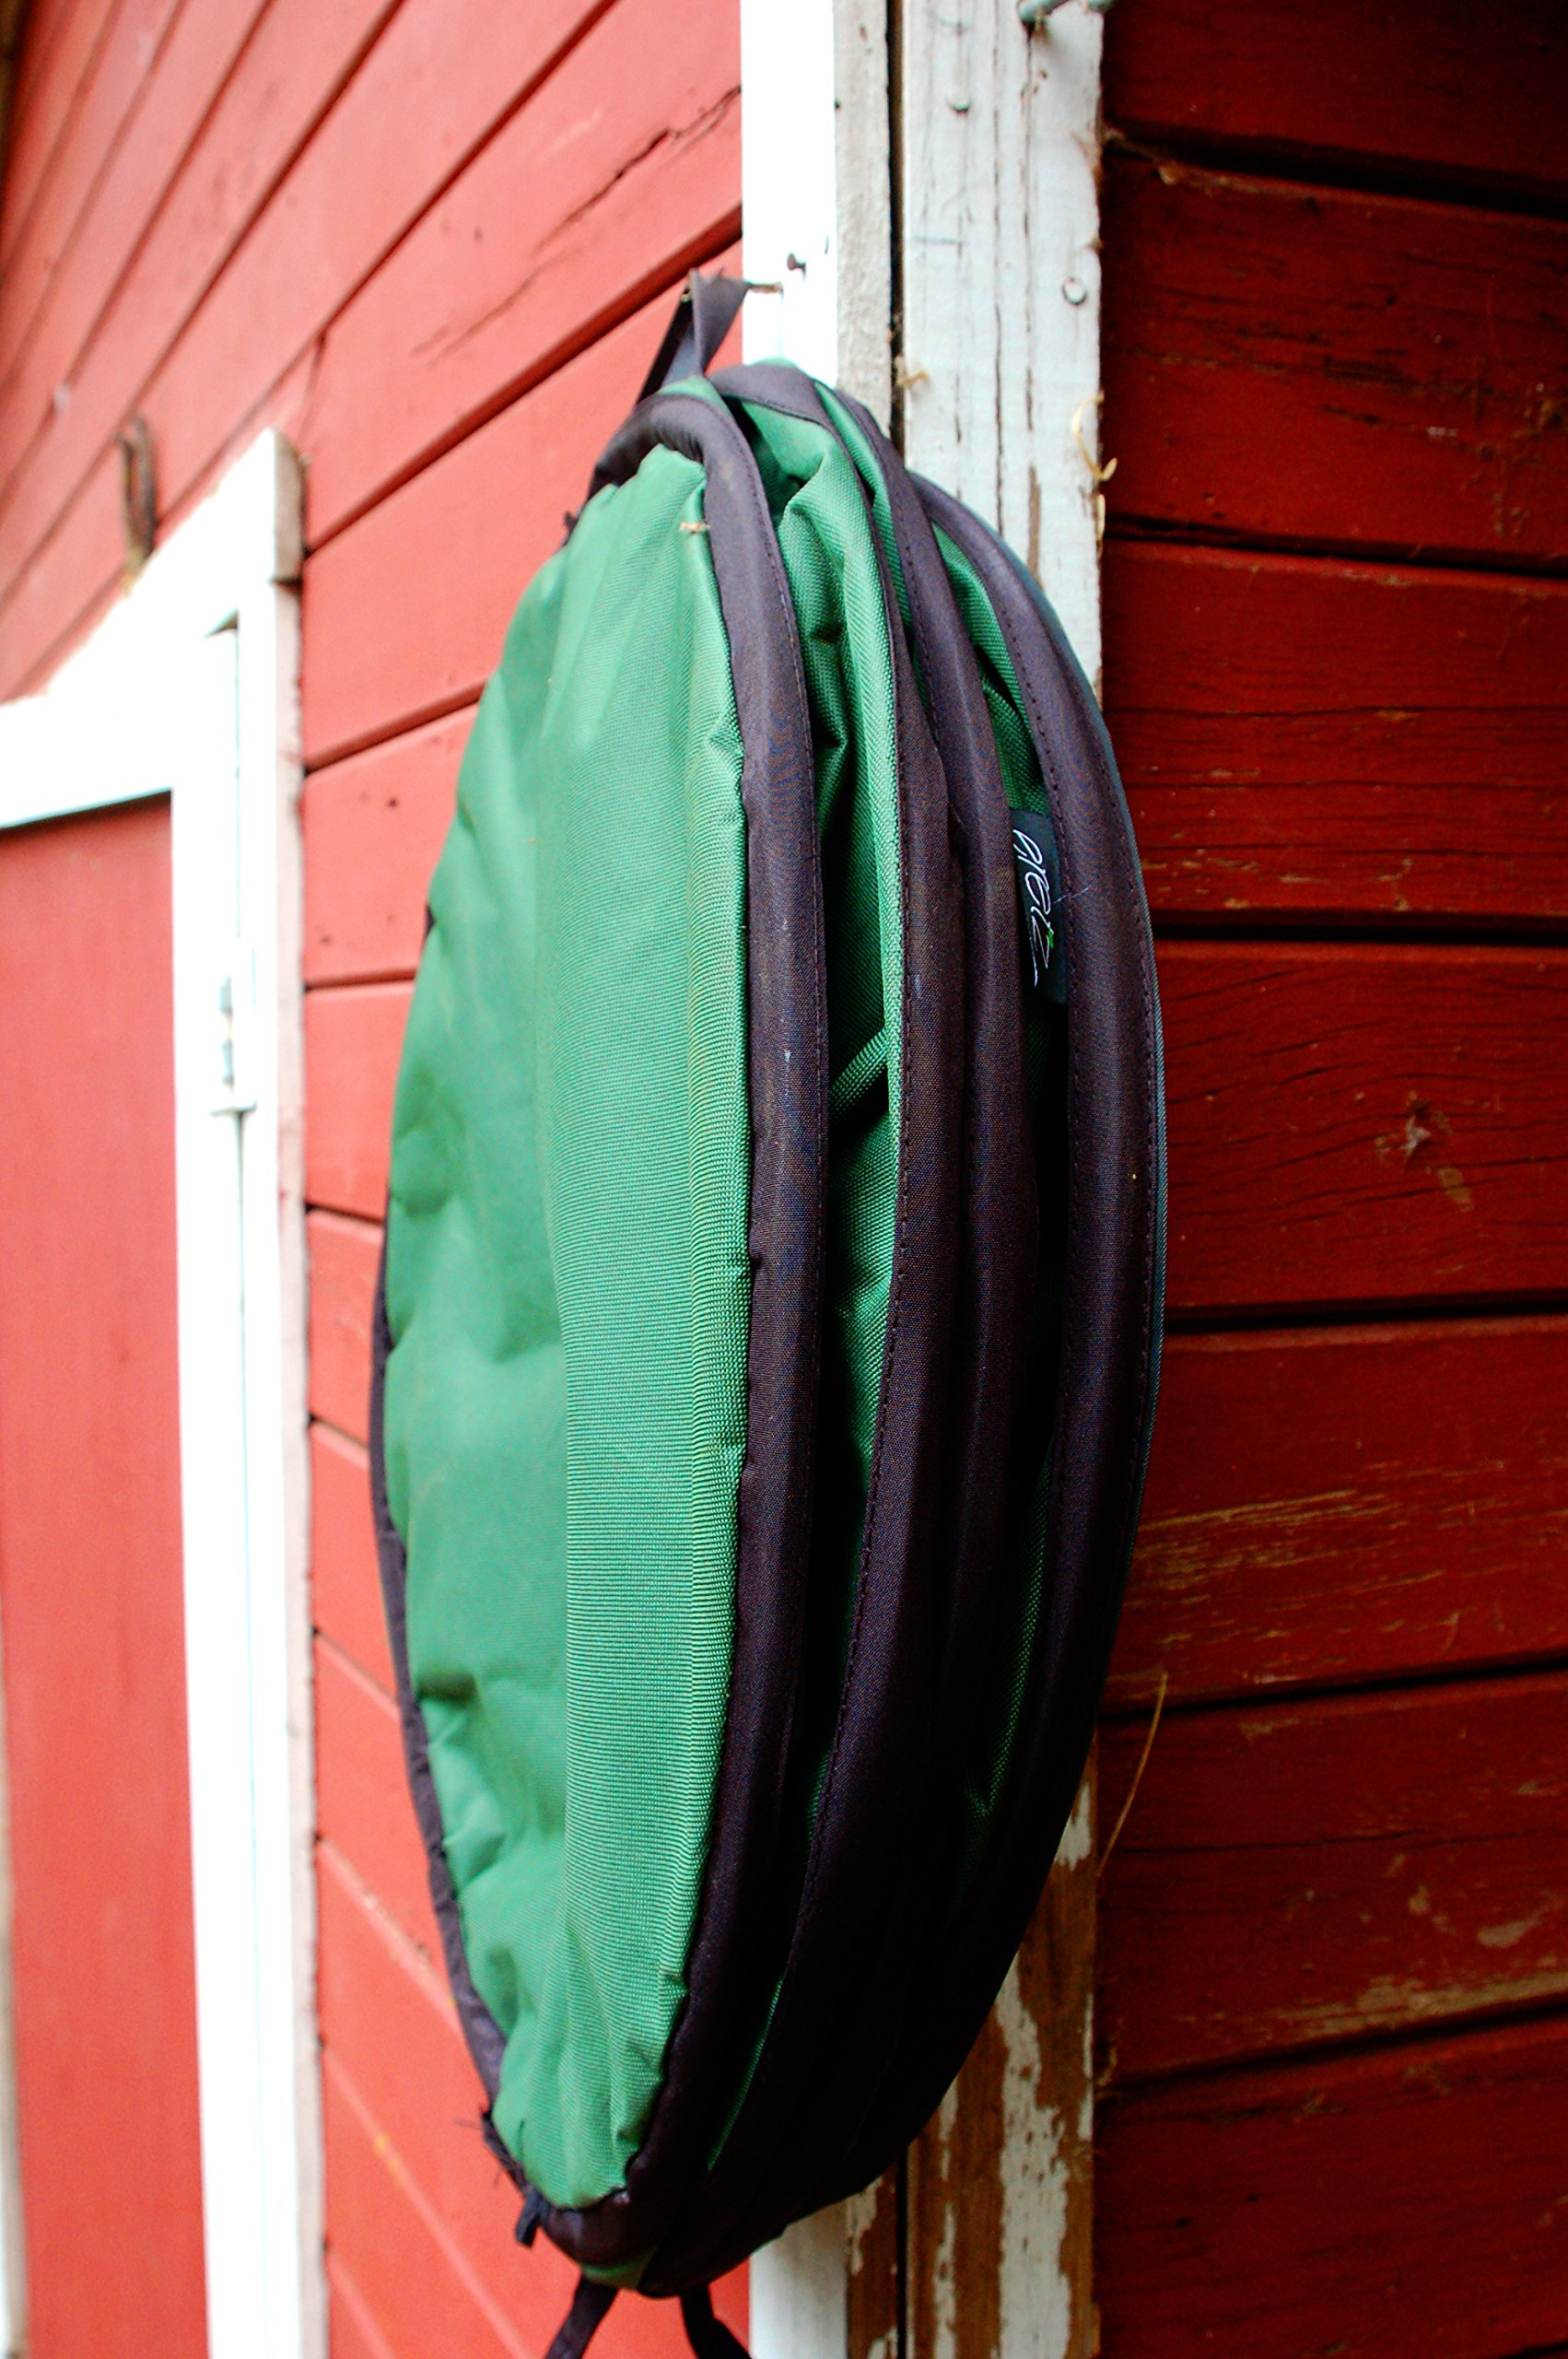 (35 Gallon) Heavy Duty Pop-Up Collapsible Yard & Garden Bag by Eretz (Image #2)